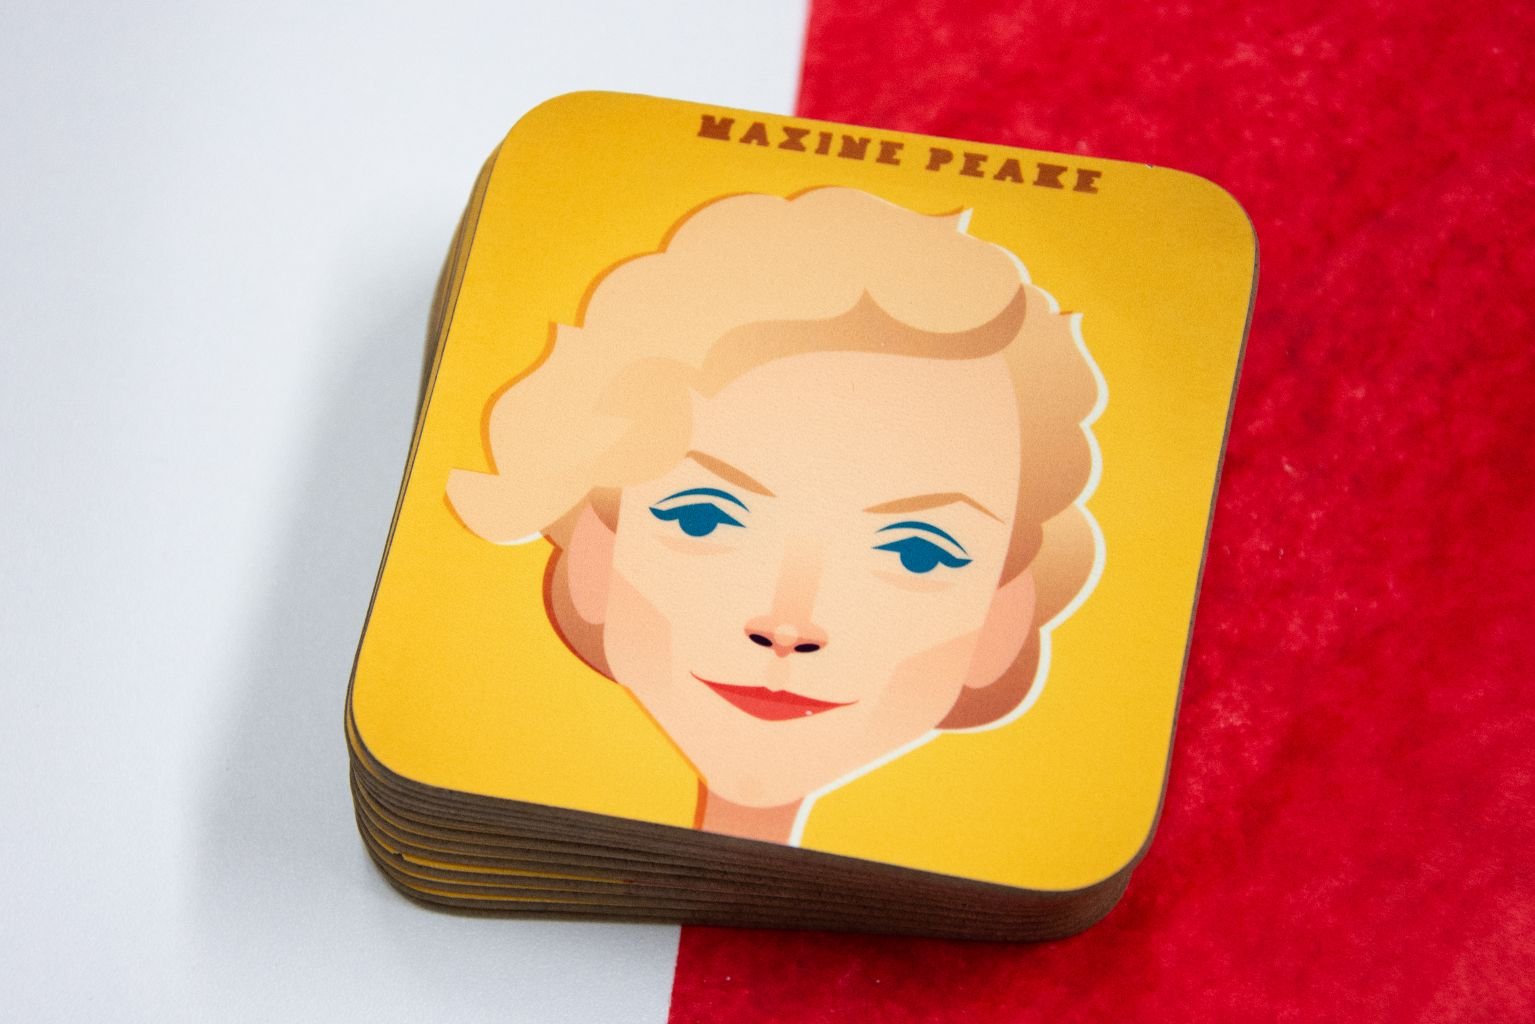 Maxine Peake Coaster Designed by Stanley Chow